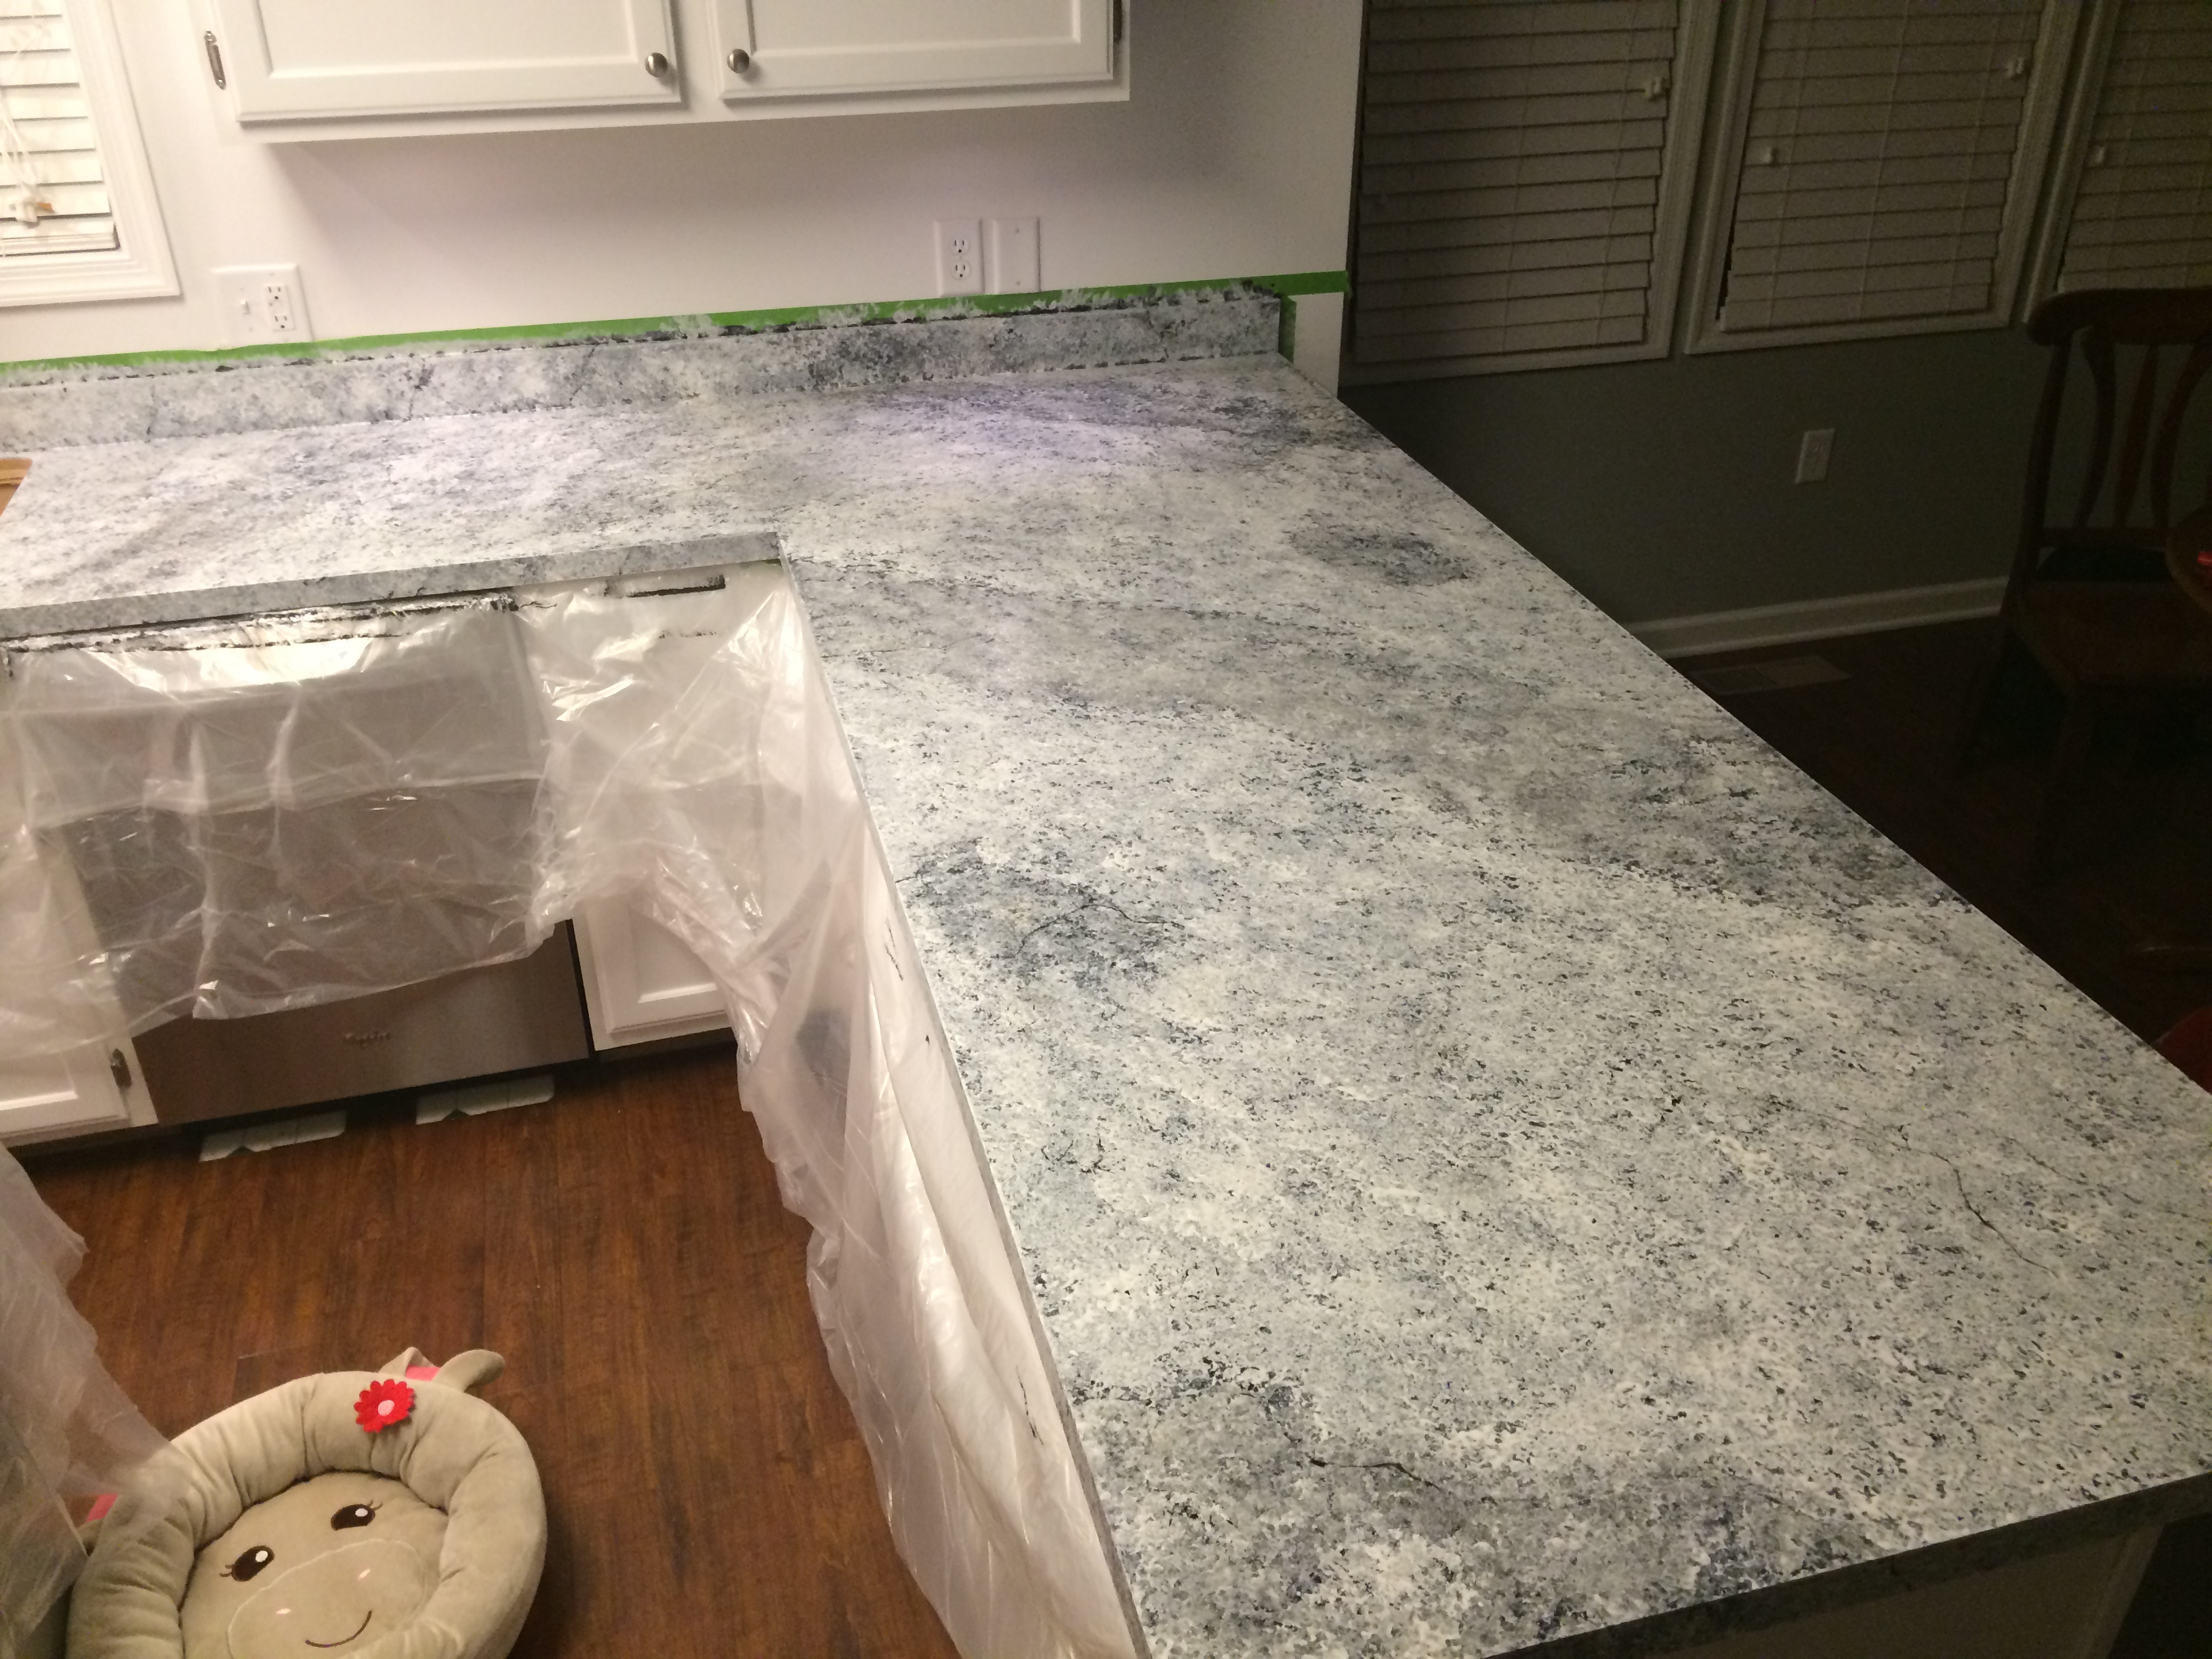 Giani Countertop Paint White : Countertop Redo with Giani Granite Countertop Paint ? Life in Pearls ...